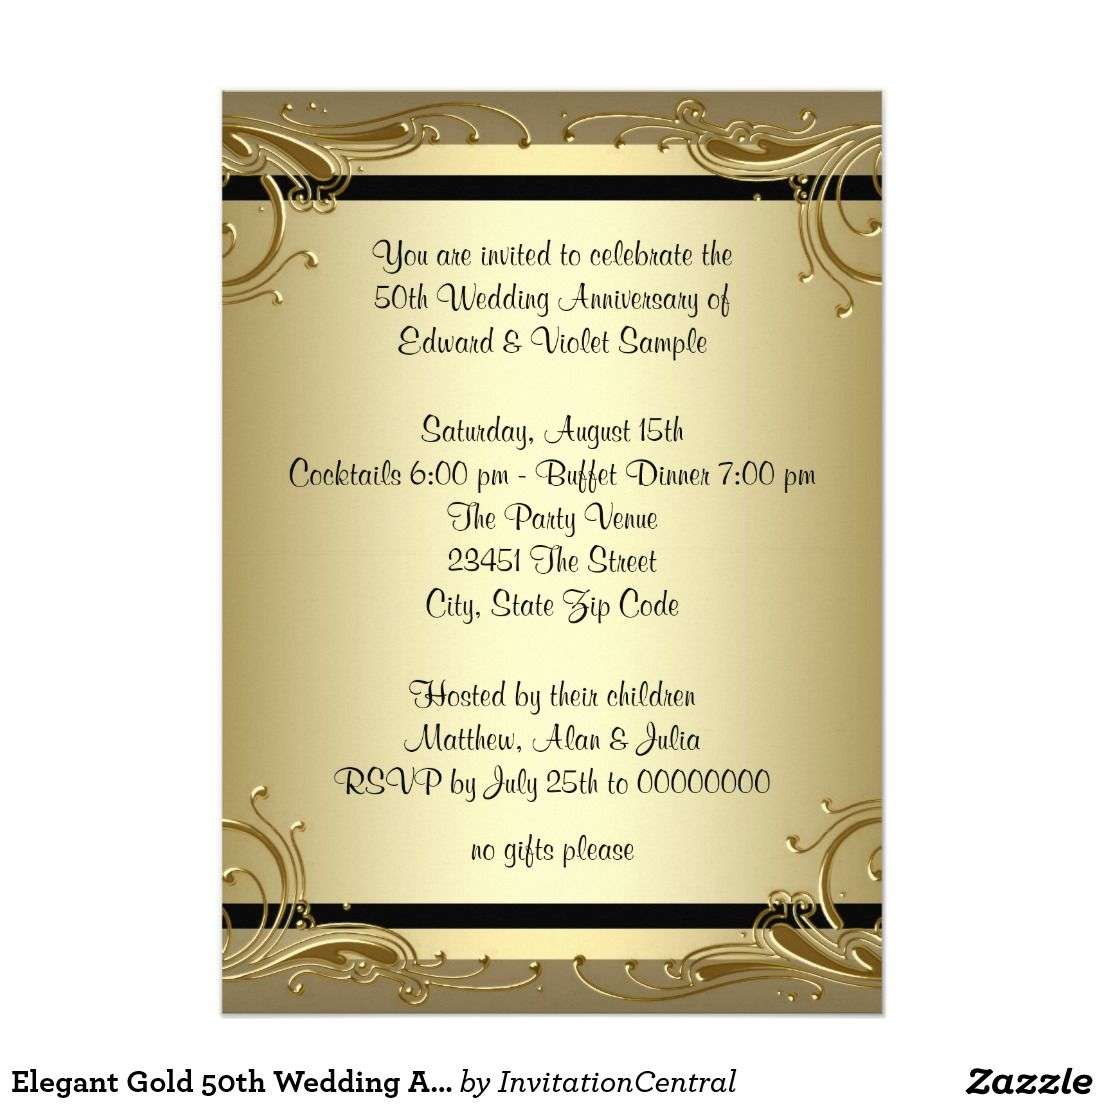 Elegant Gold 50th Wedding Anniversary Party Invitation Zazzle Com 50th Anniversary Invitations Wedding Anniversary Party Invitations 50th Wedding Anniversary Party